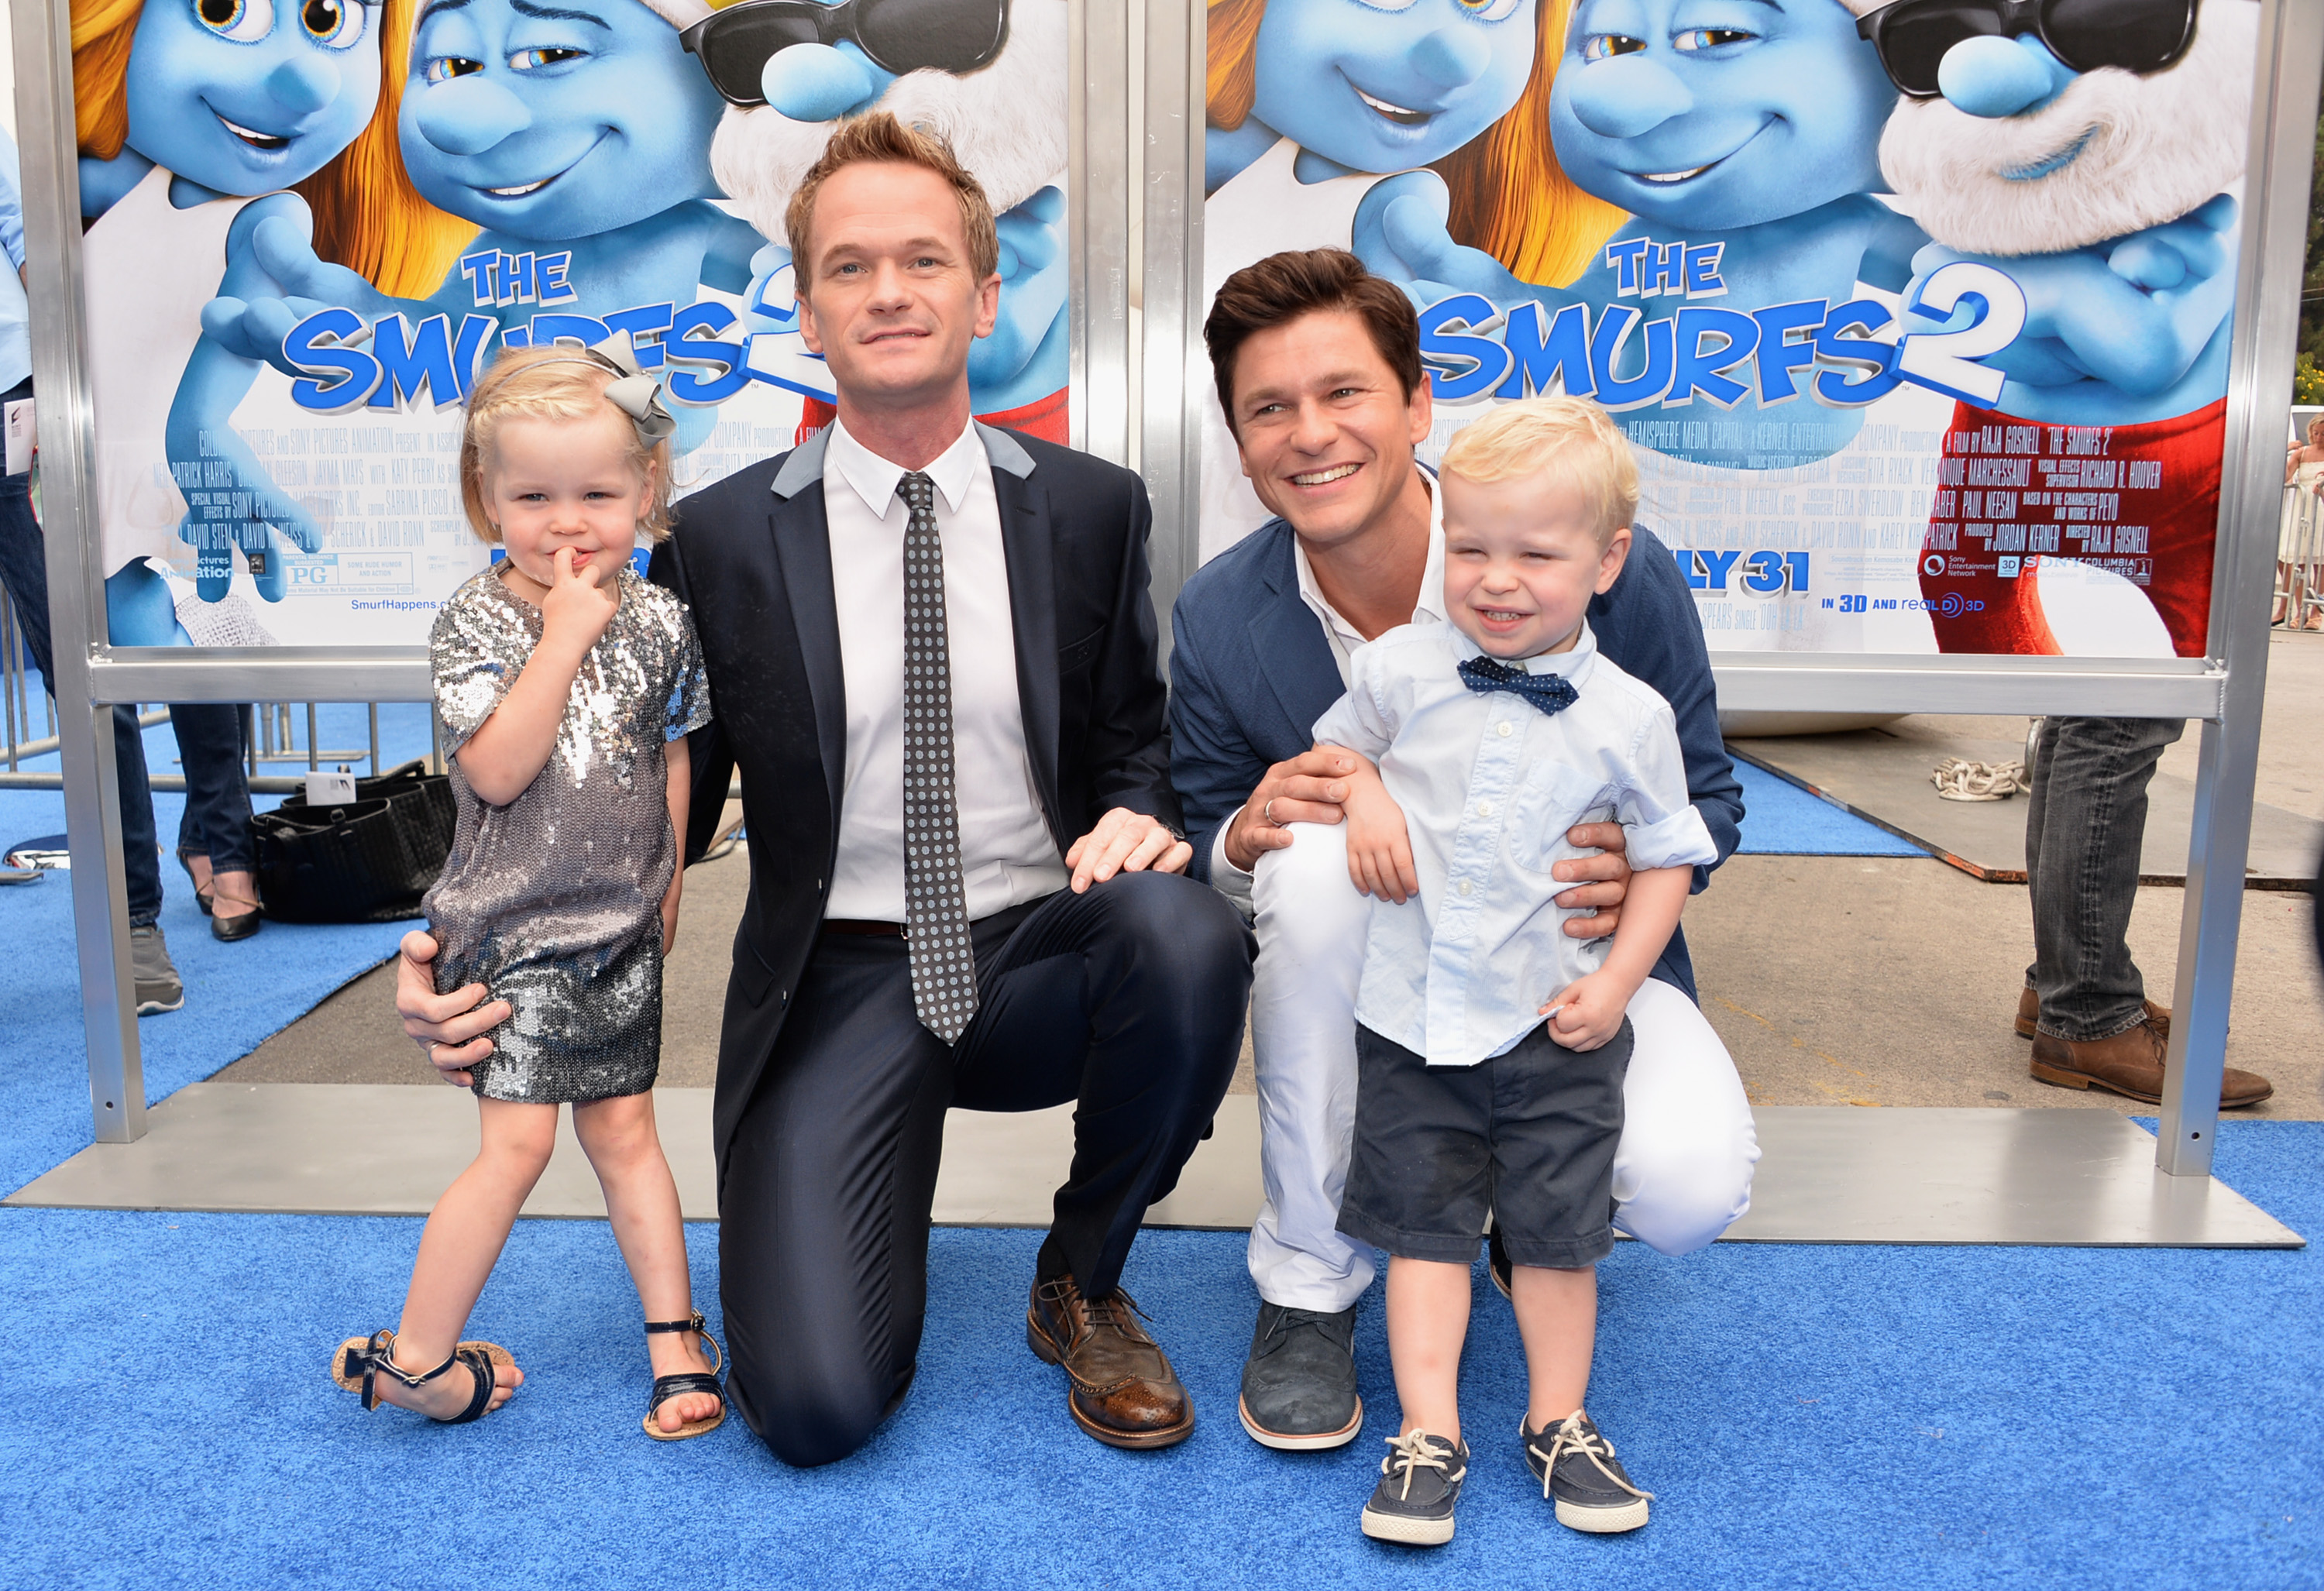 neil patrick harris' family halloween costume is the perfect